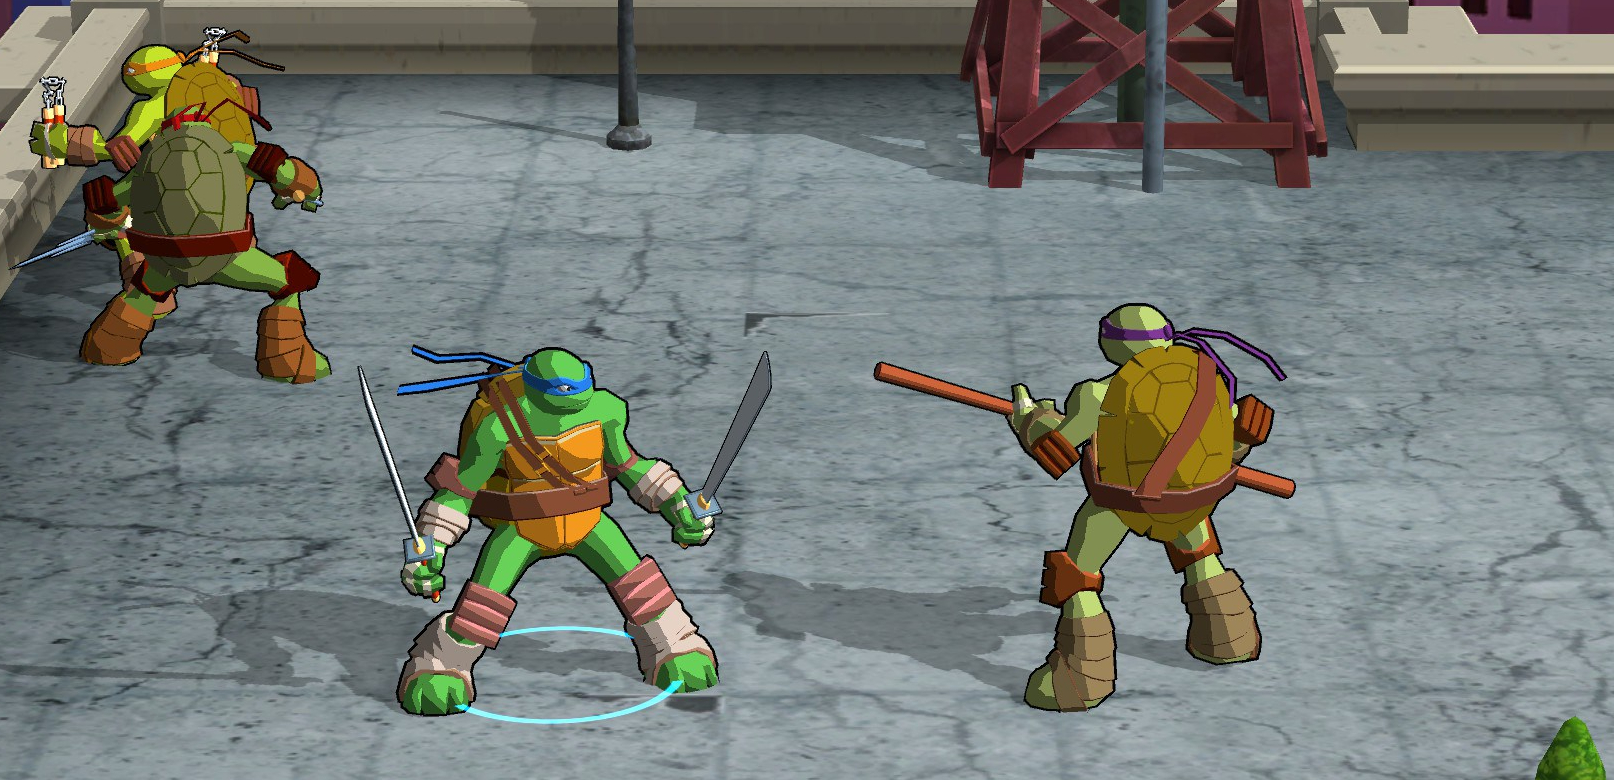 Review - Teenage Mutant Ninja Turtles: Portal Power (PC)